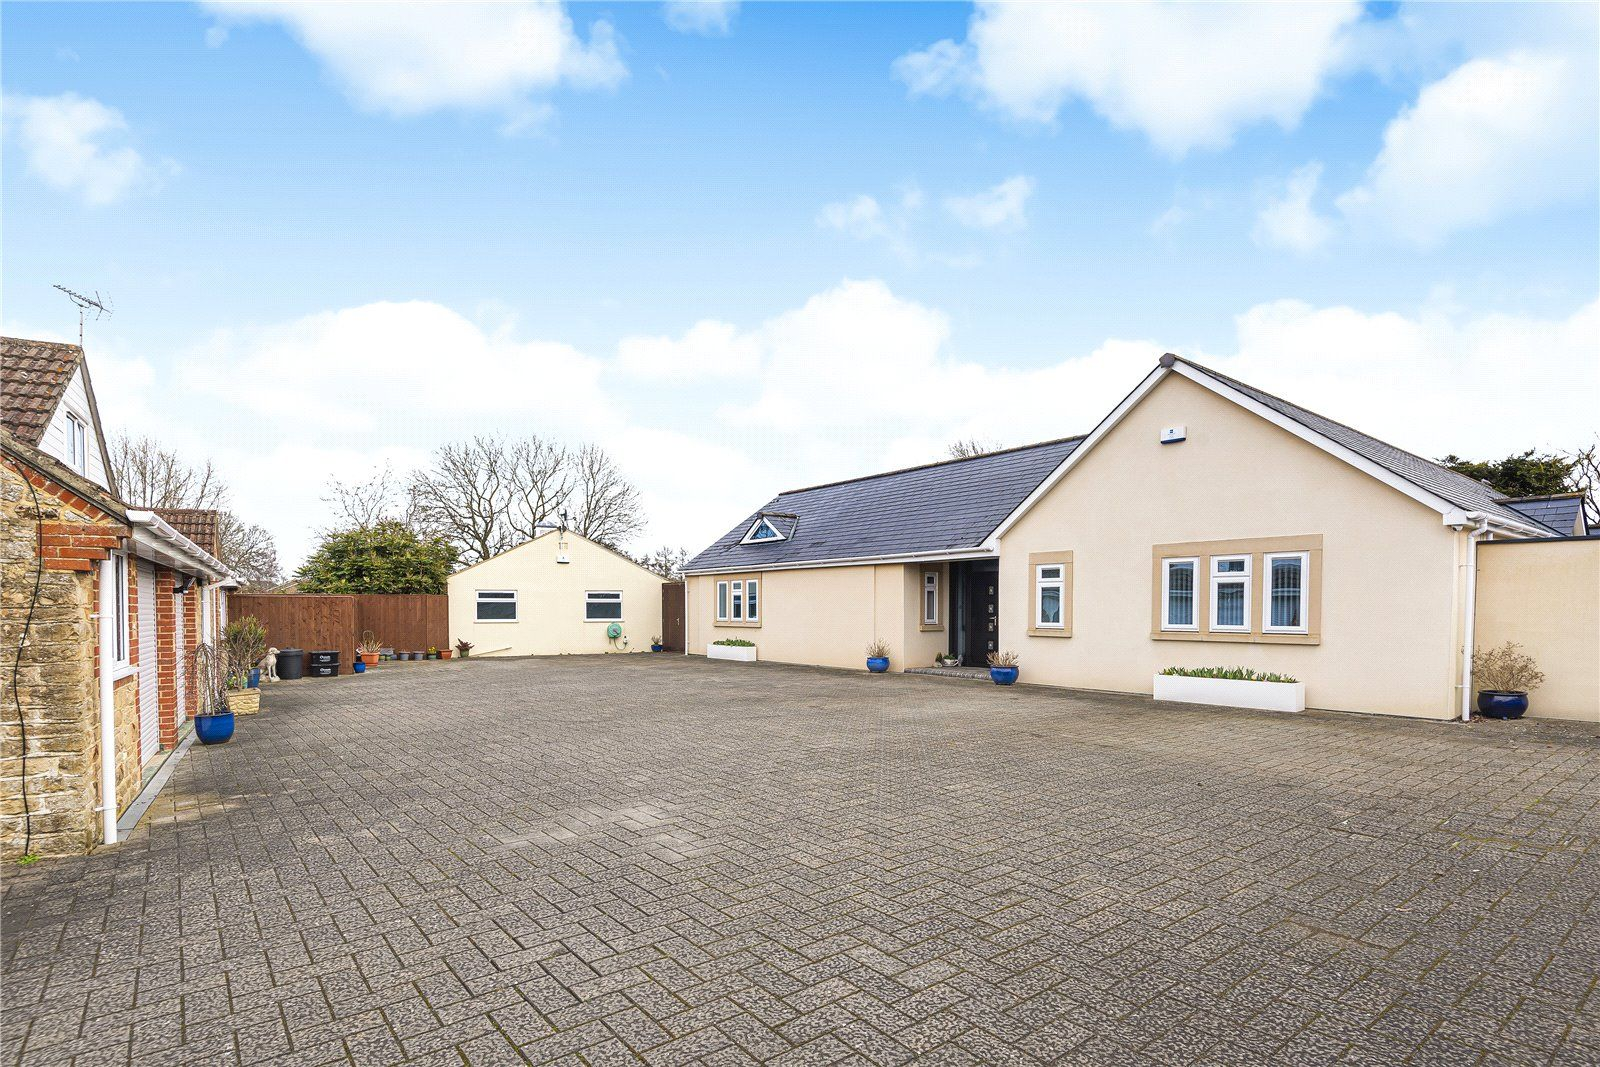 4 Bed Bungalow For Sale In Stratton Swindon Sn3 Zoopla